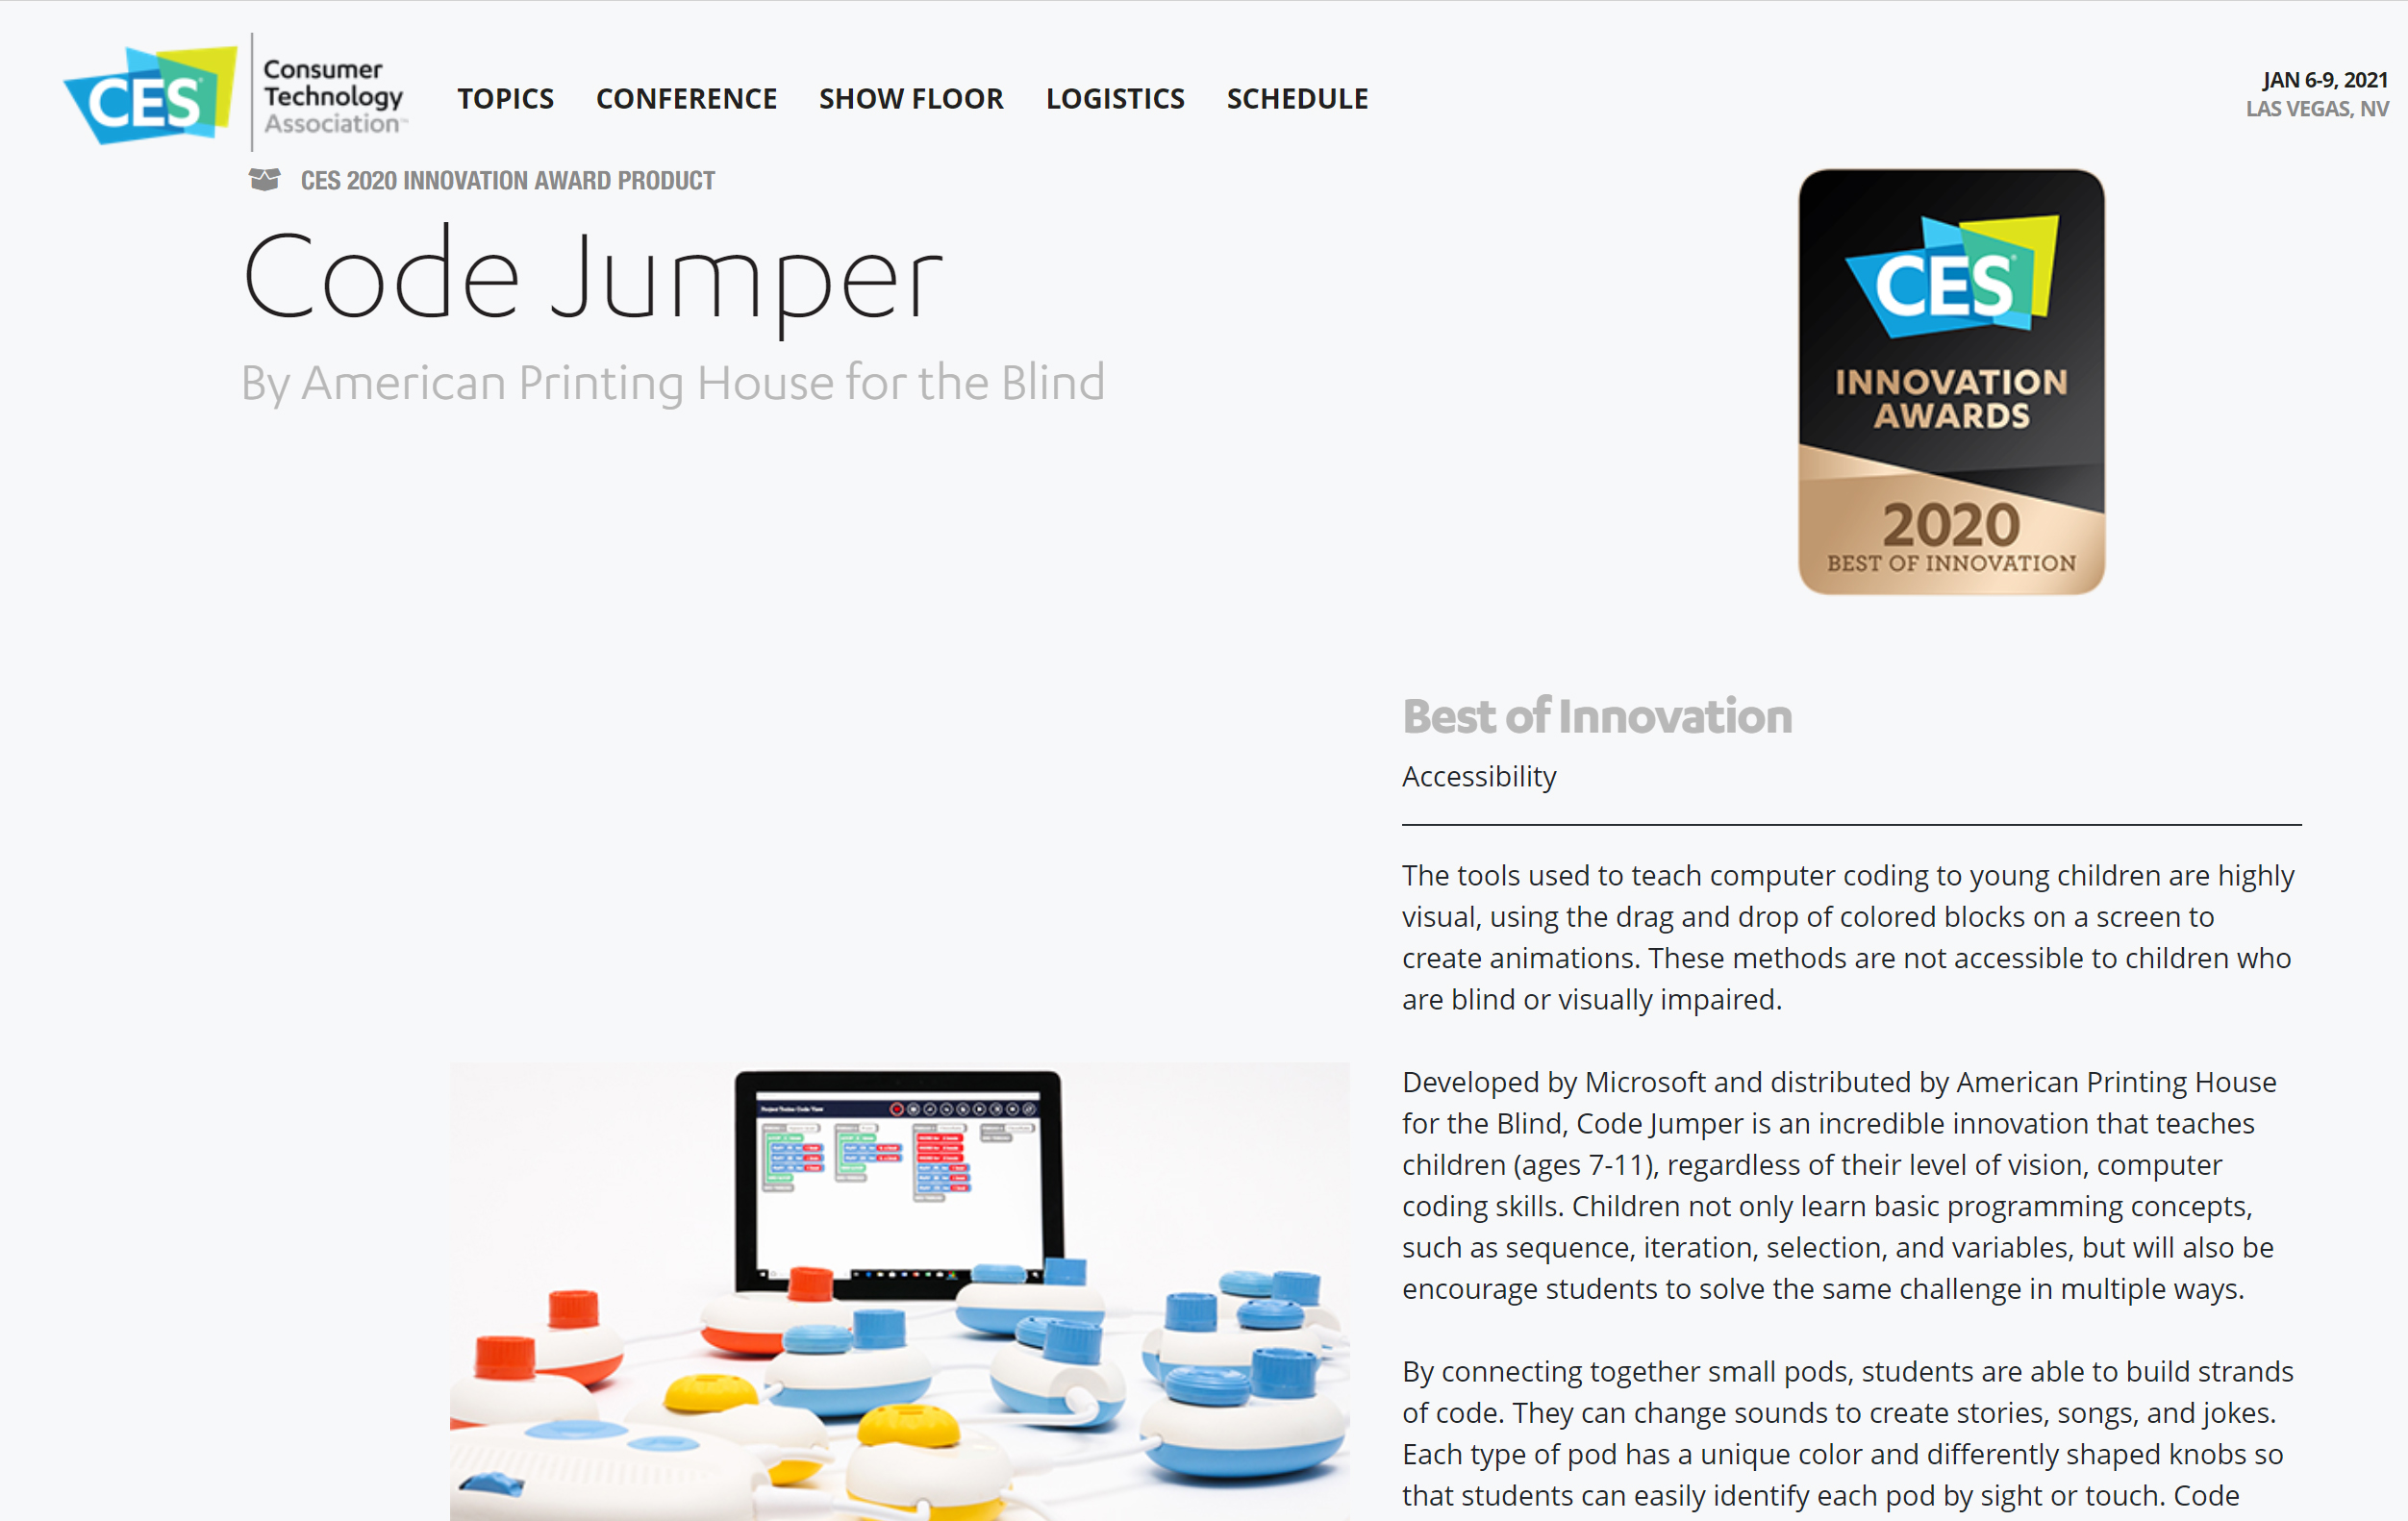 Screenshot of the CES 2020 awards page